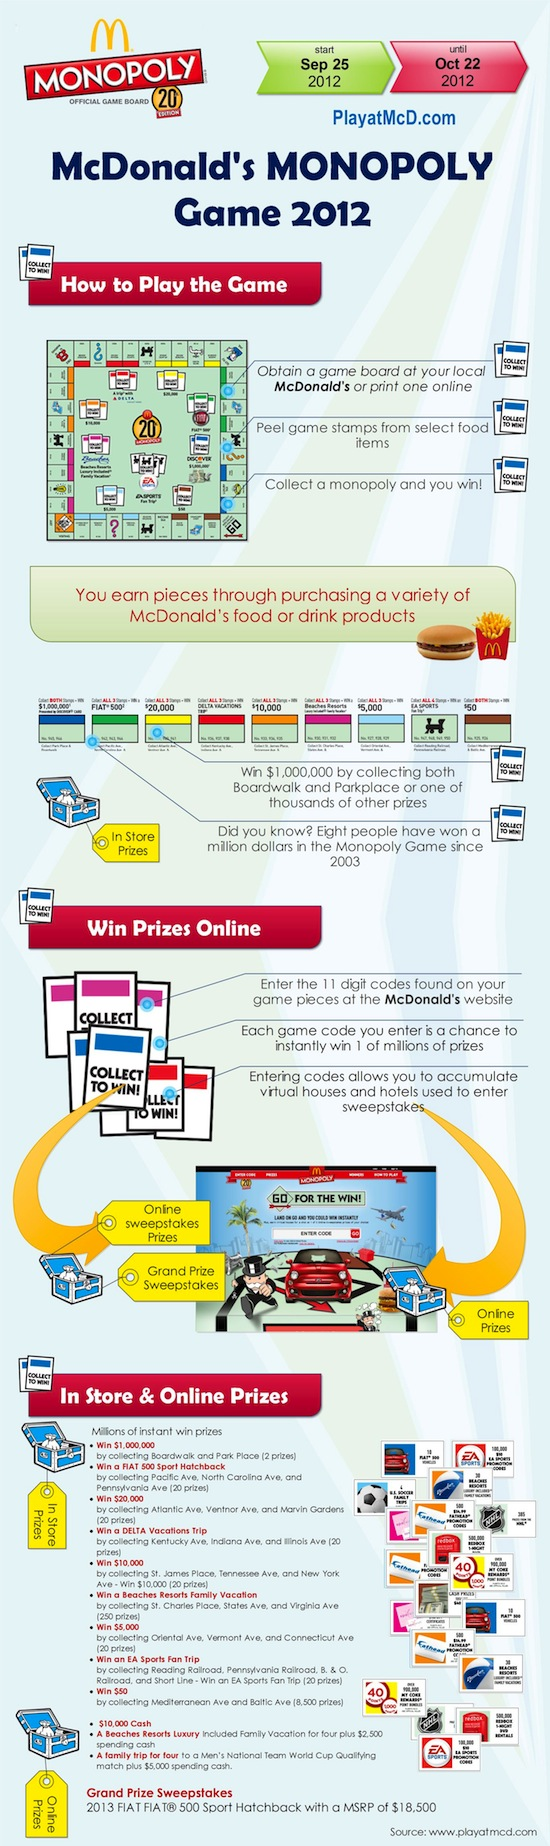 McDonald's Monopoly Game infographic